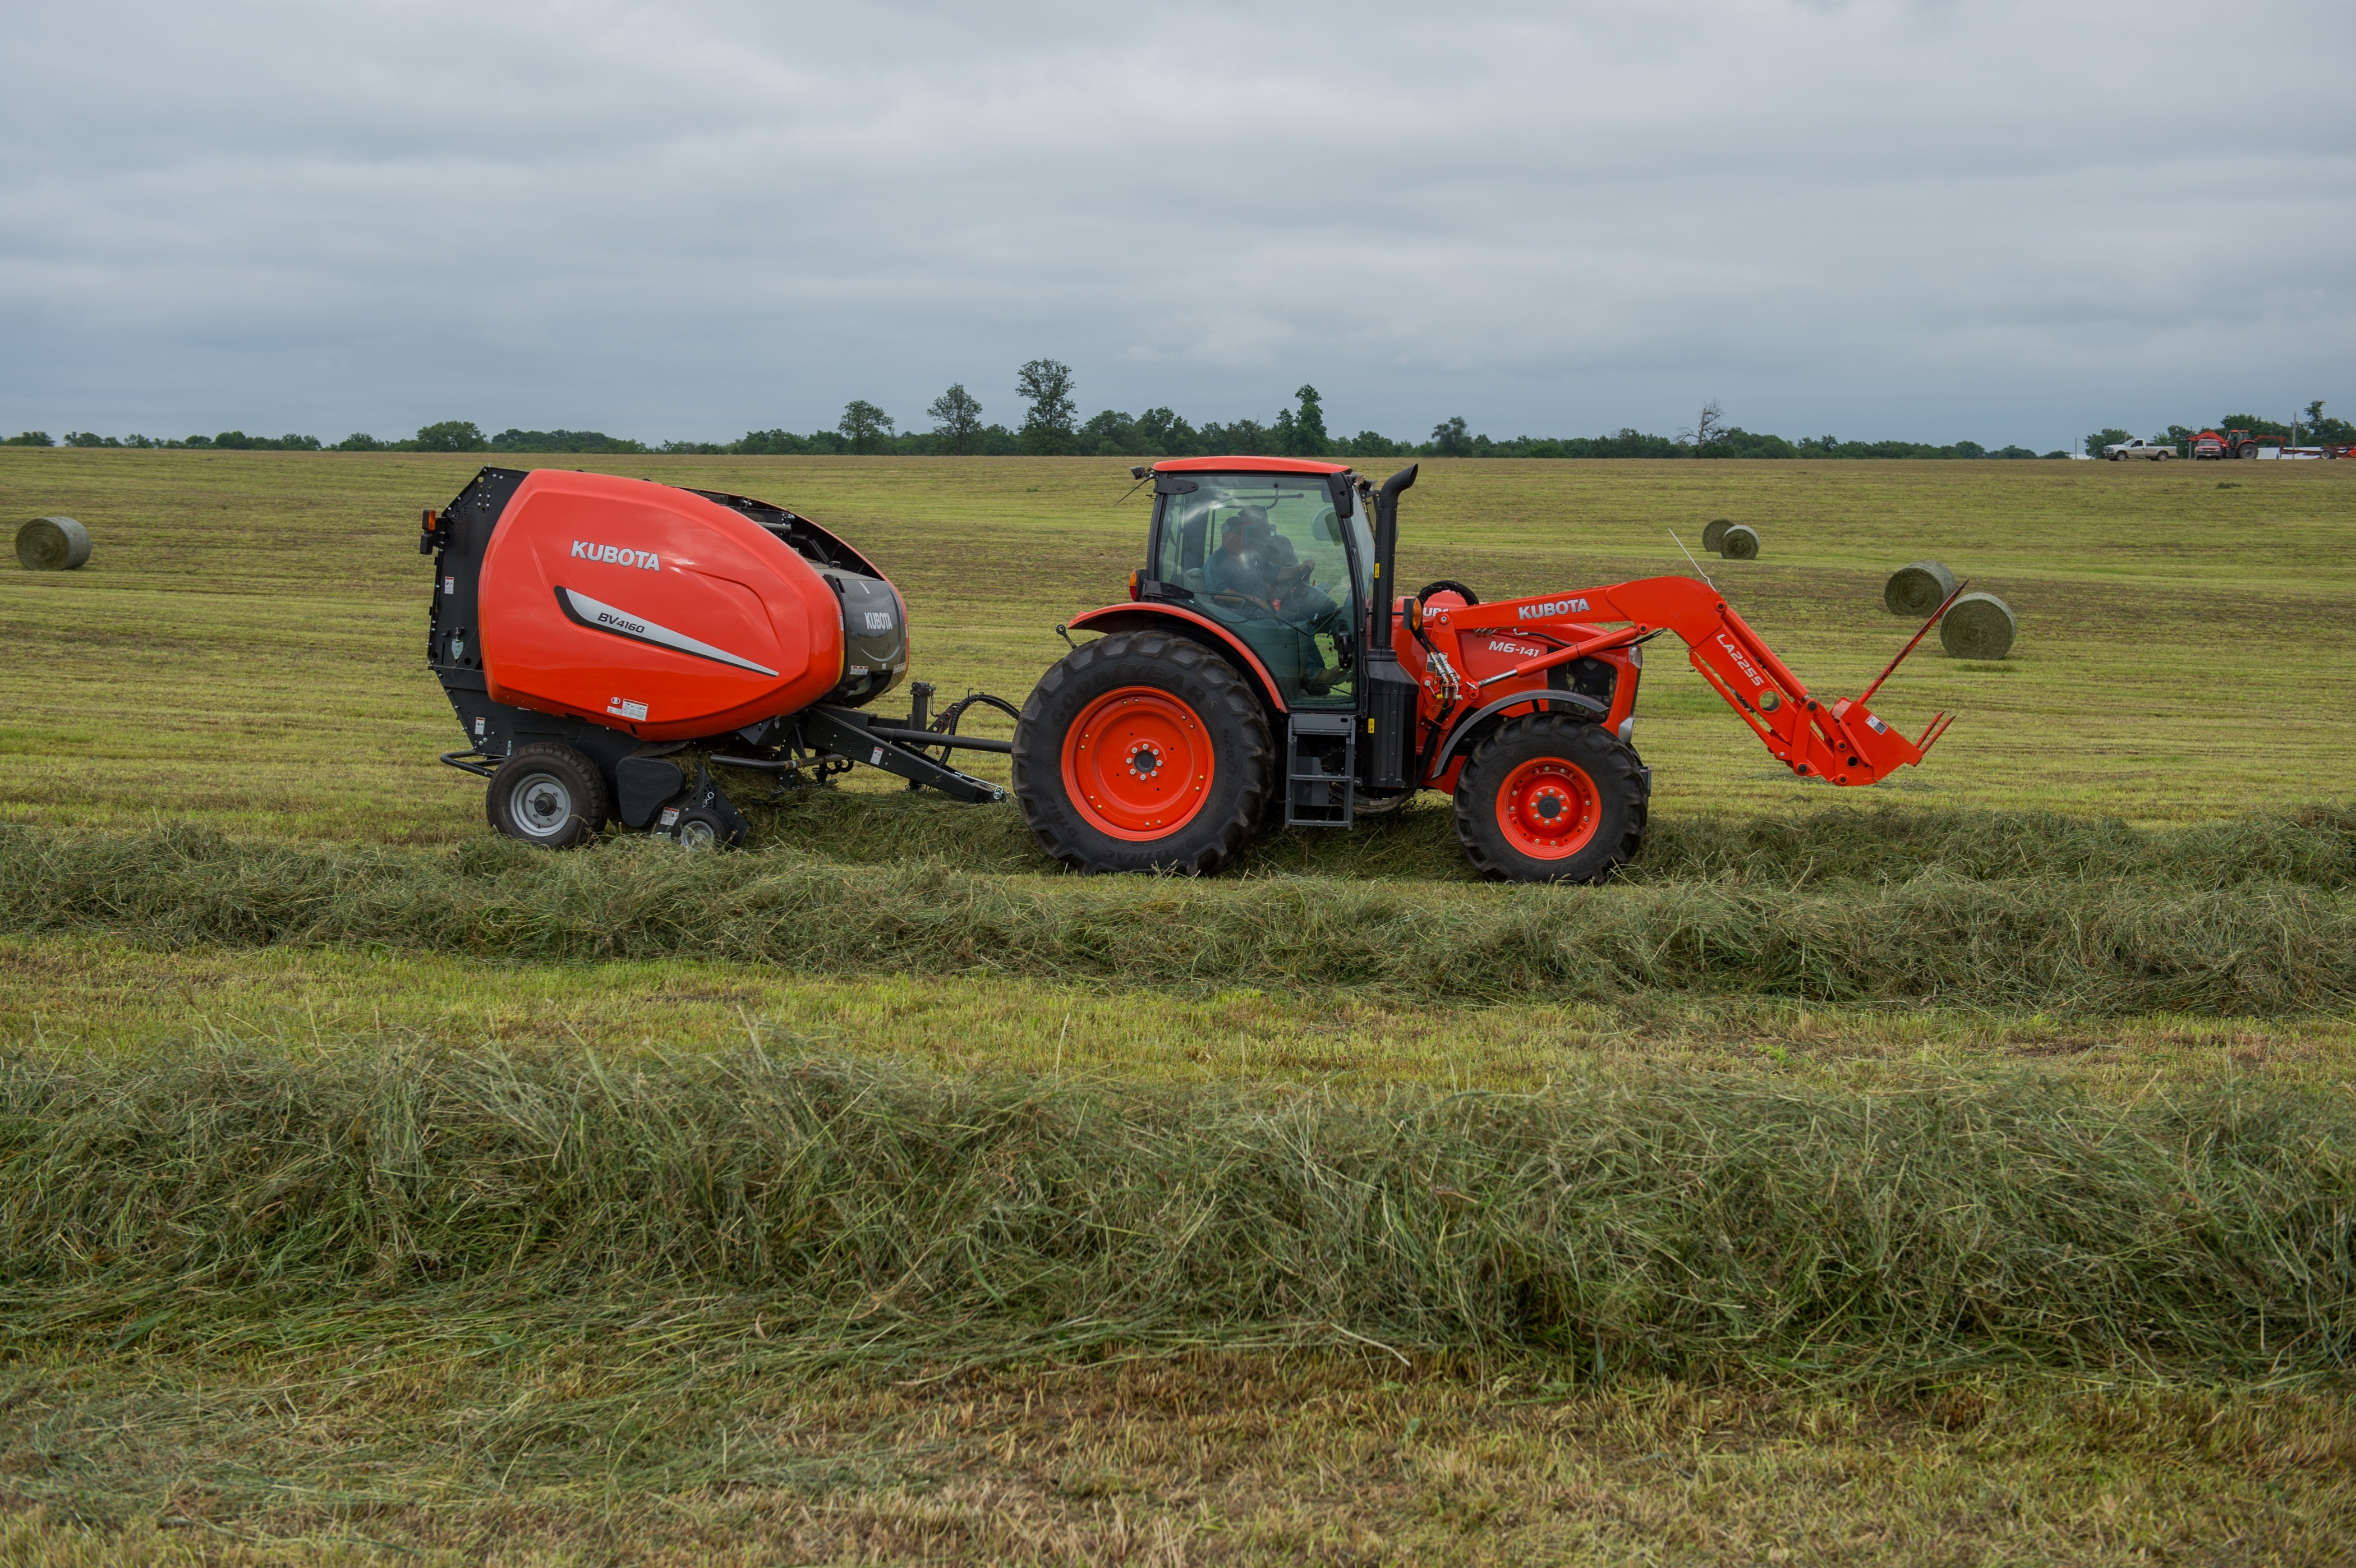 Kubota Introduces New M6-Series: Utility Tractor Line with Deluxe ...